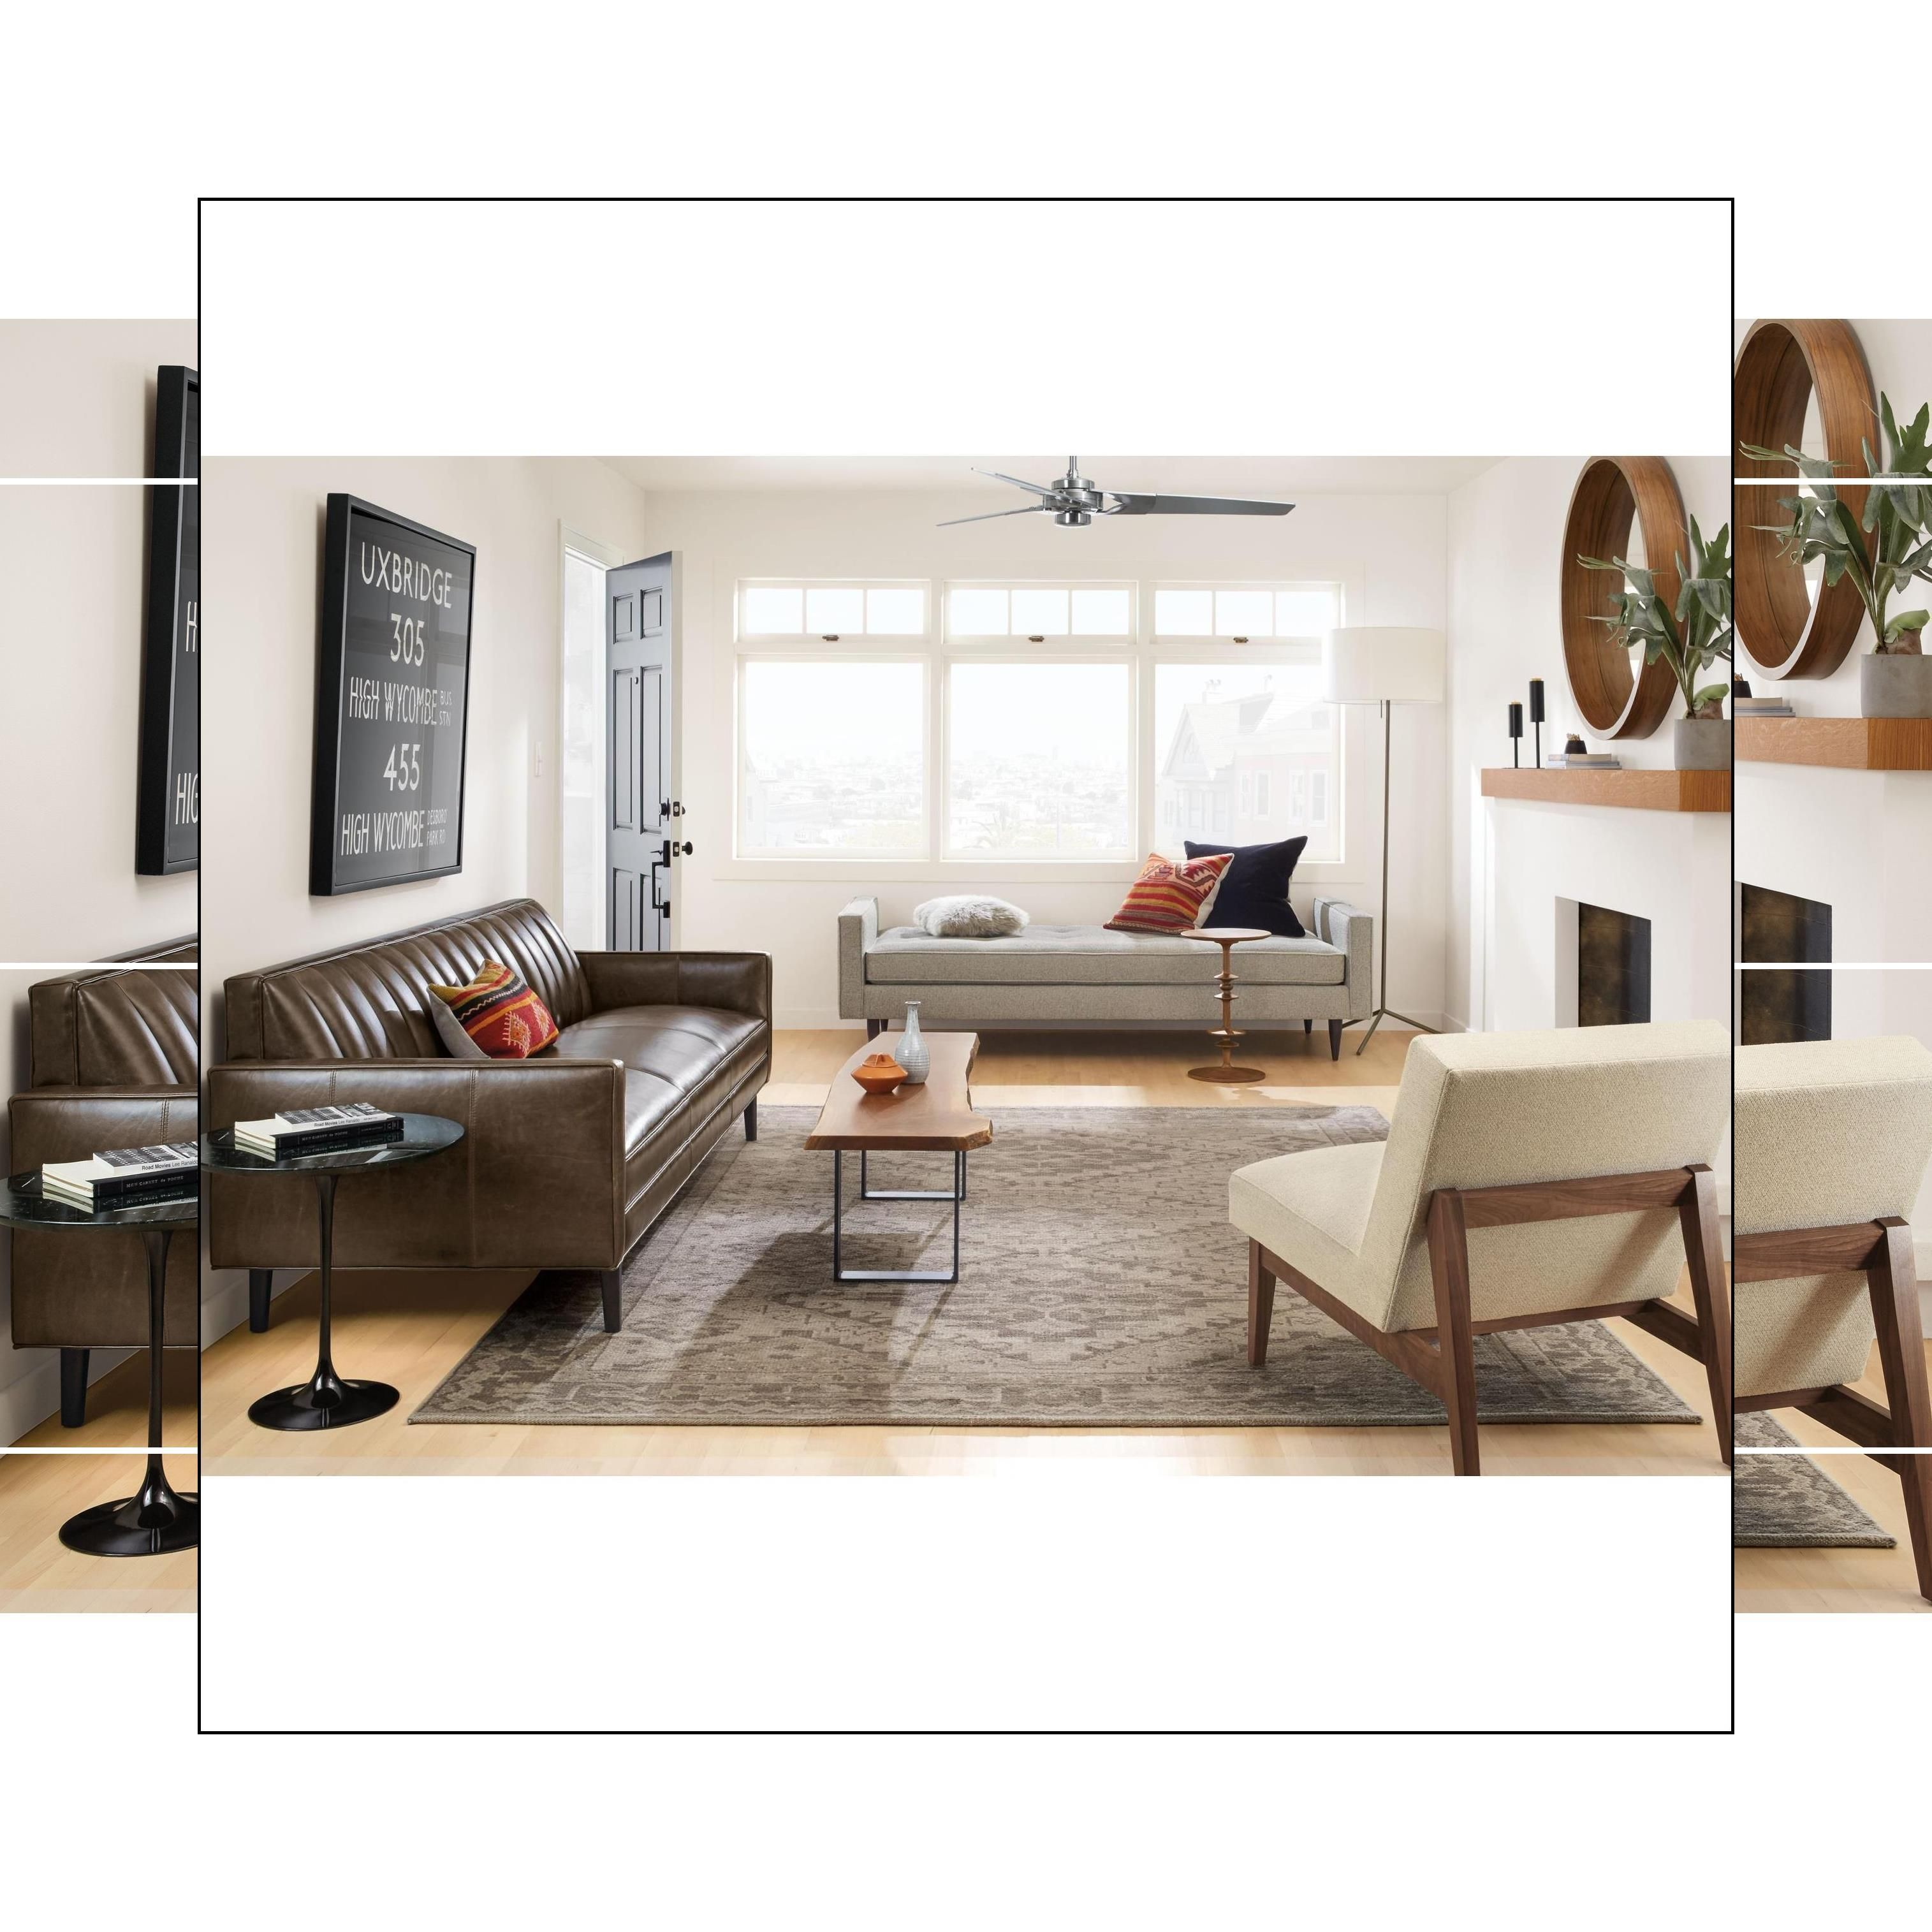 Couches For Sale Living Room Sets Near Me Furniture D